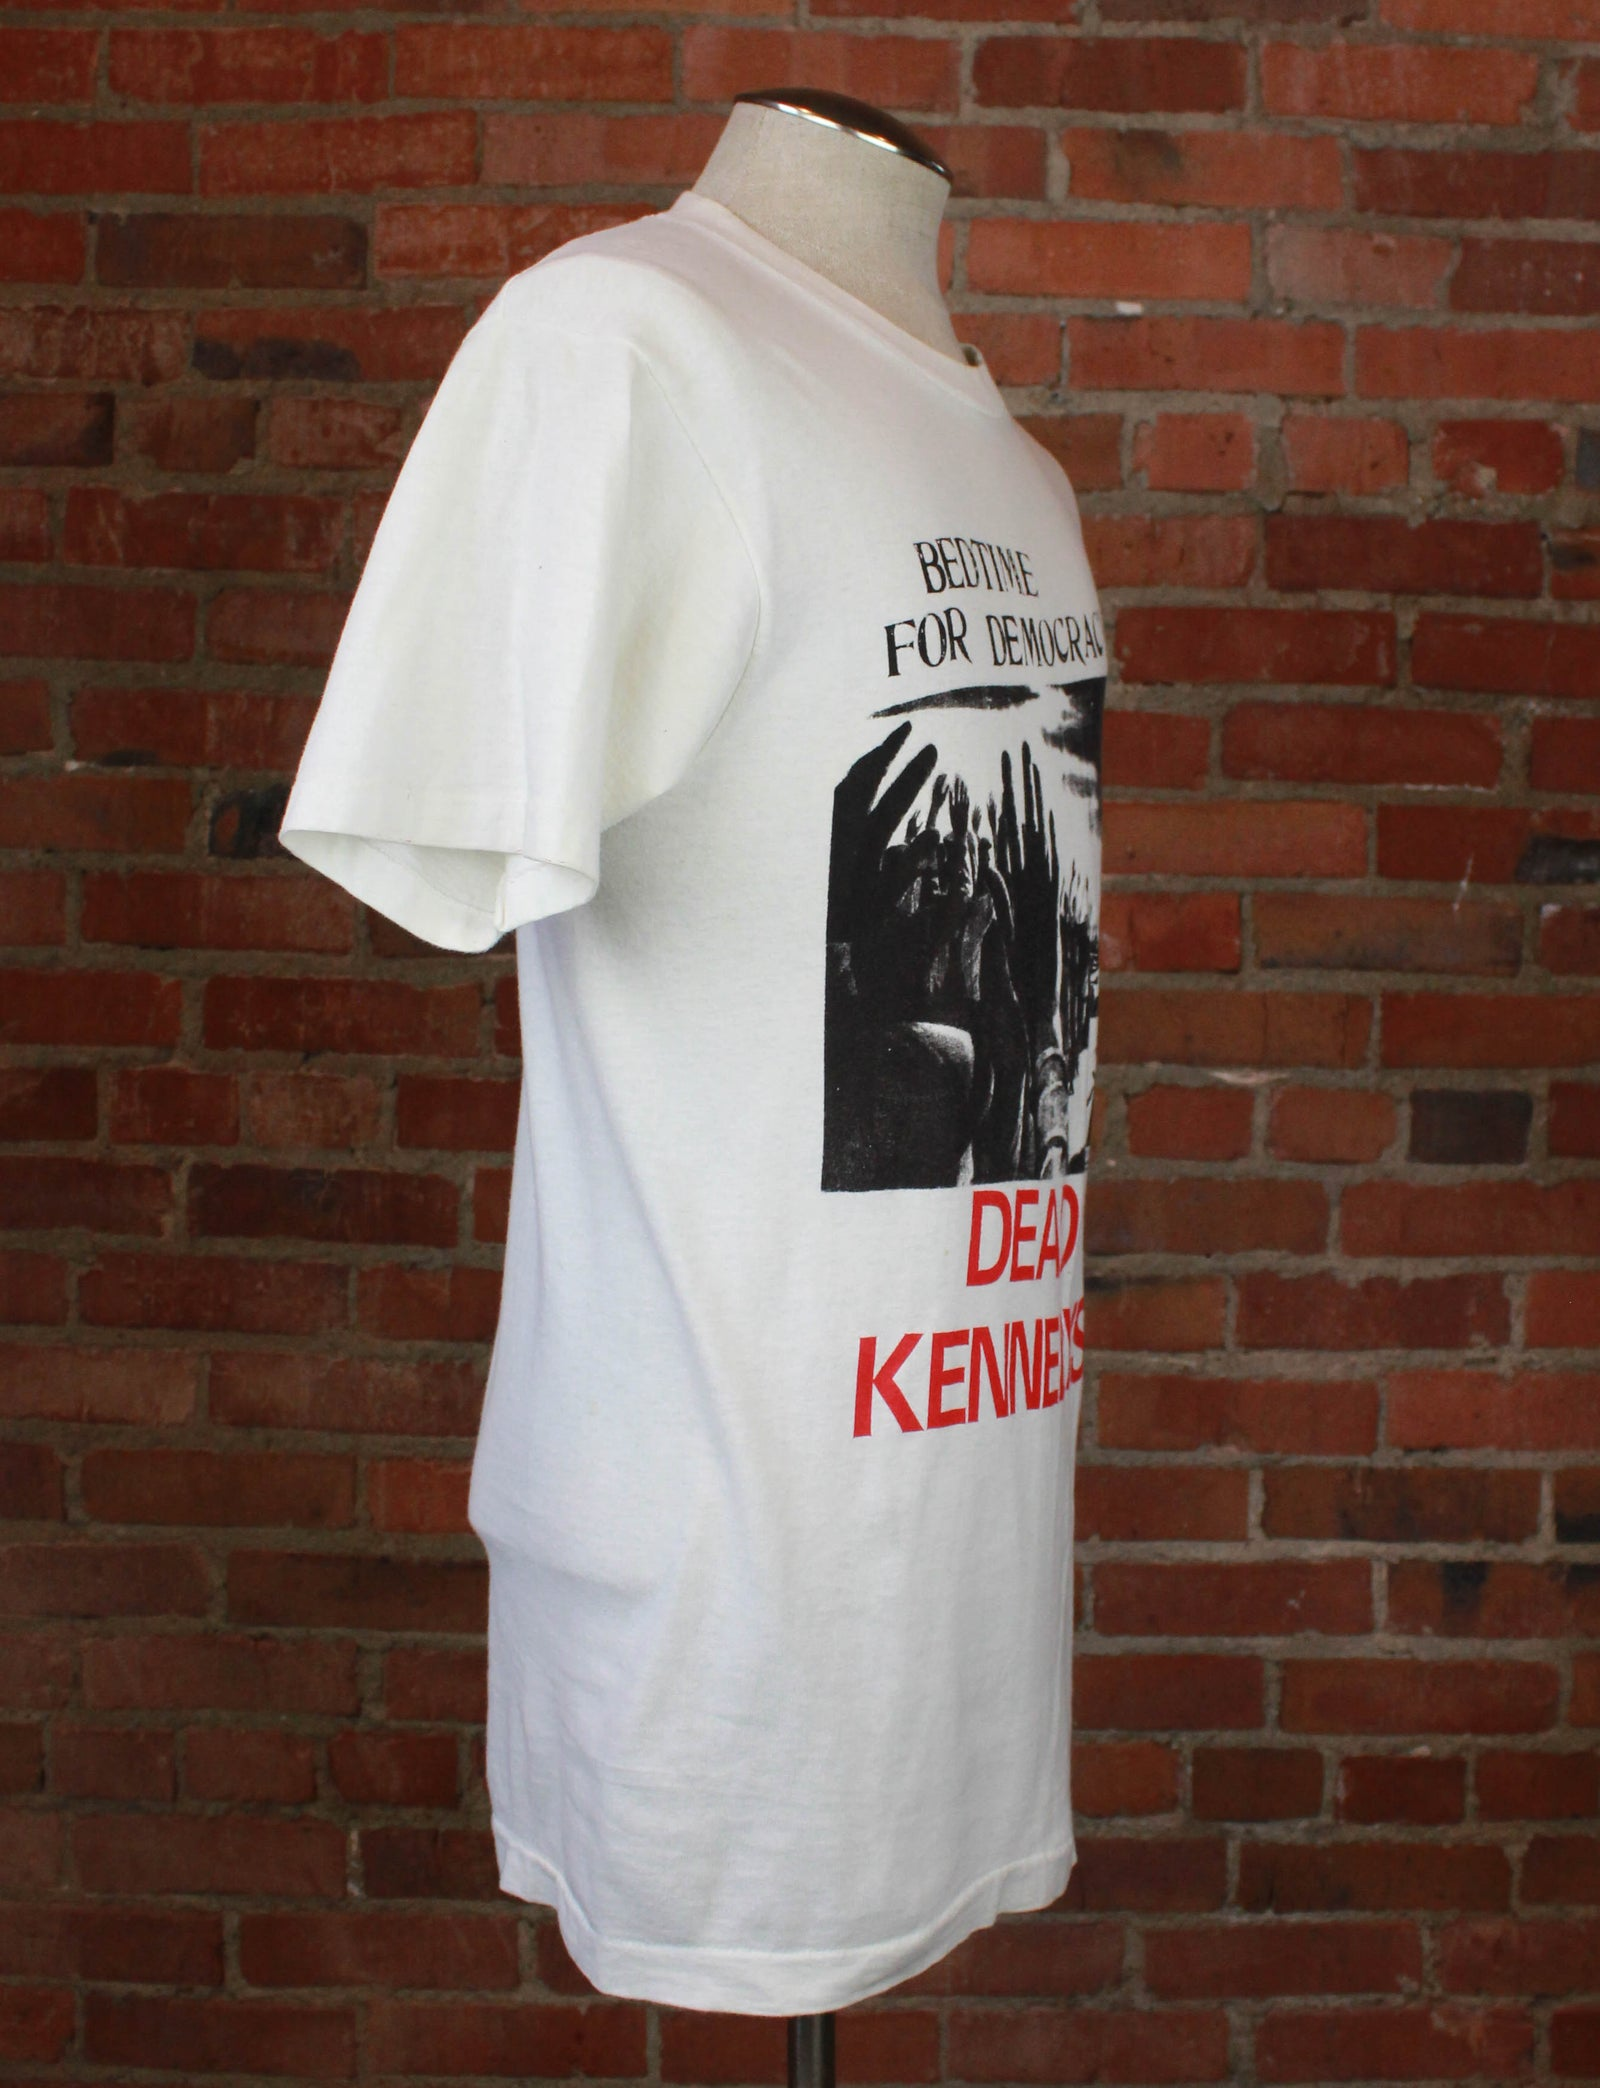 Vintage 1986 Dead Kennedys Concert T Shirt Bedtime For Democracy White Unisex Large